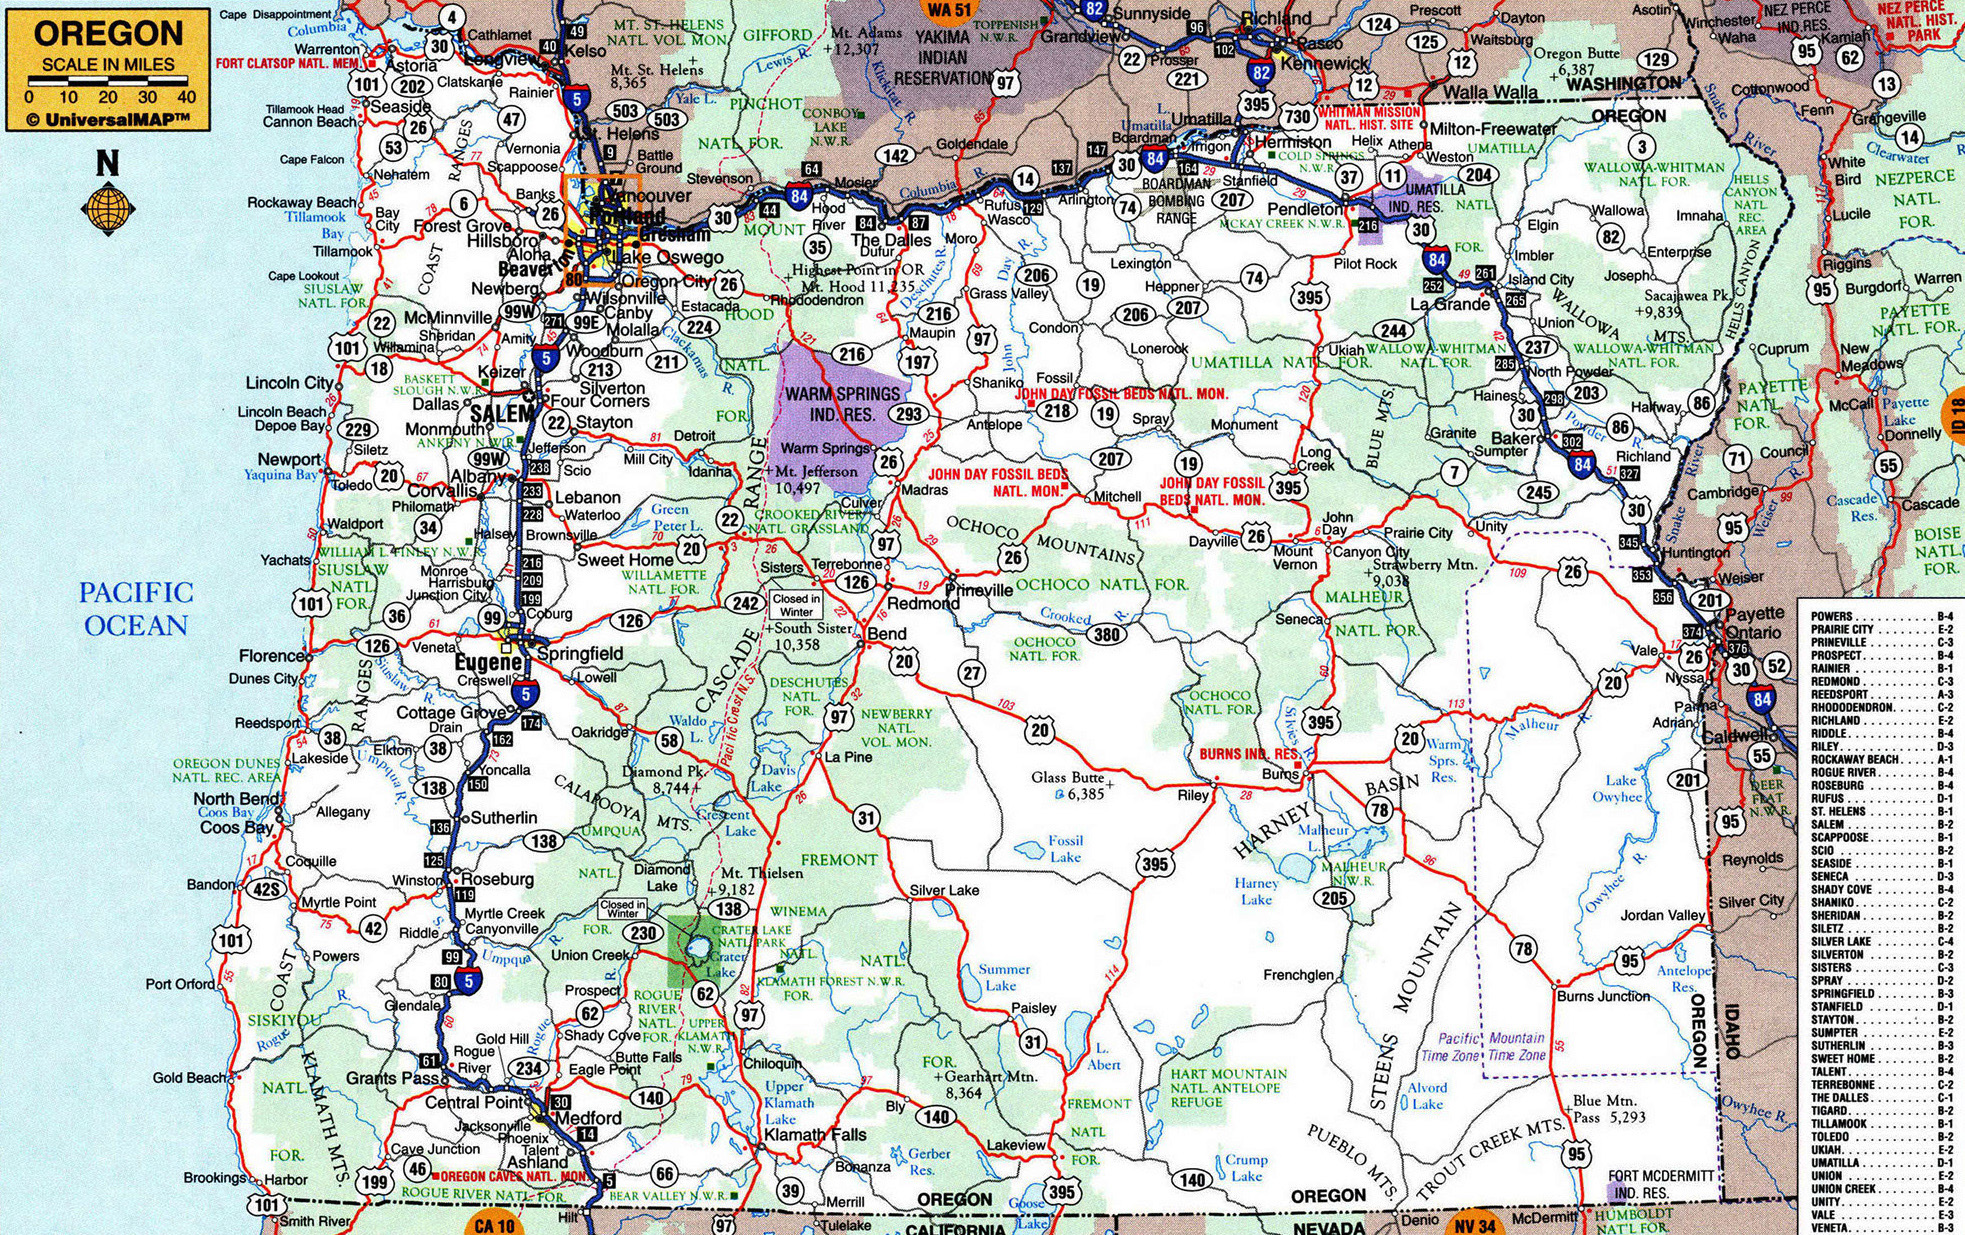 Detailed Map Of Oregon Large detailed roads and highways map of Oregon state with other